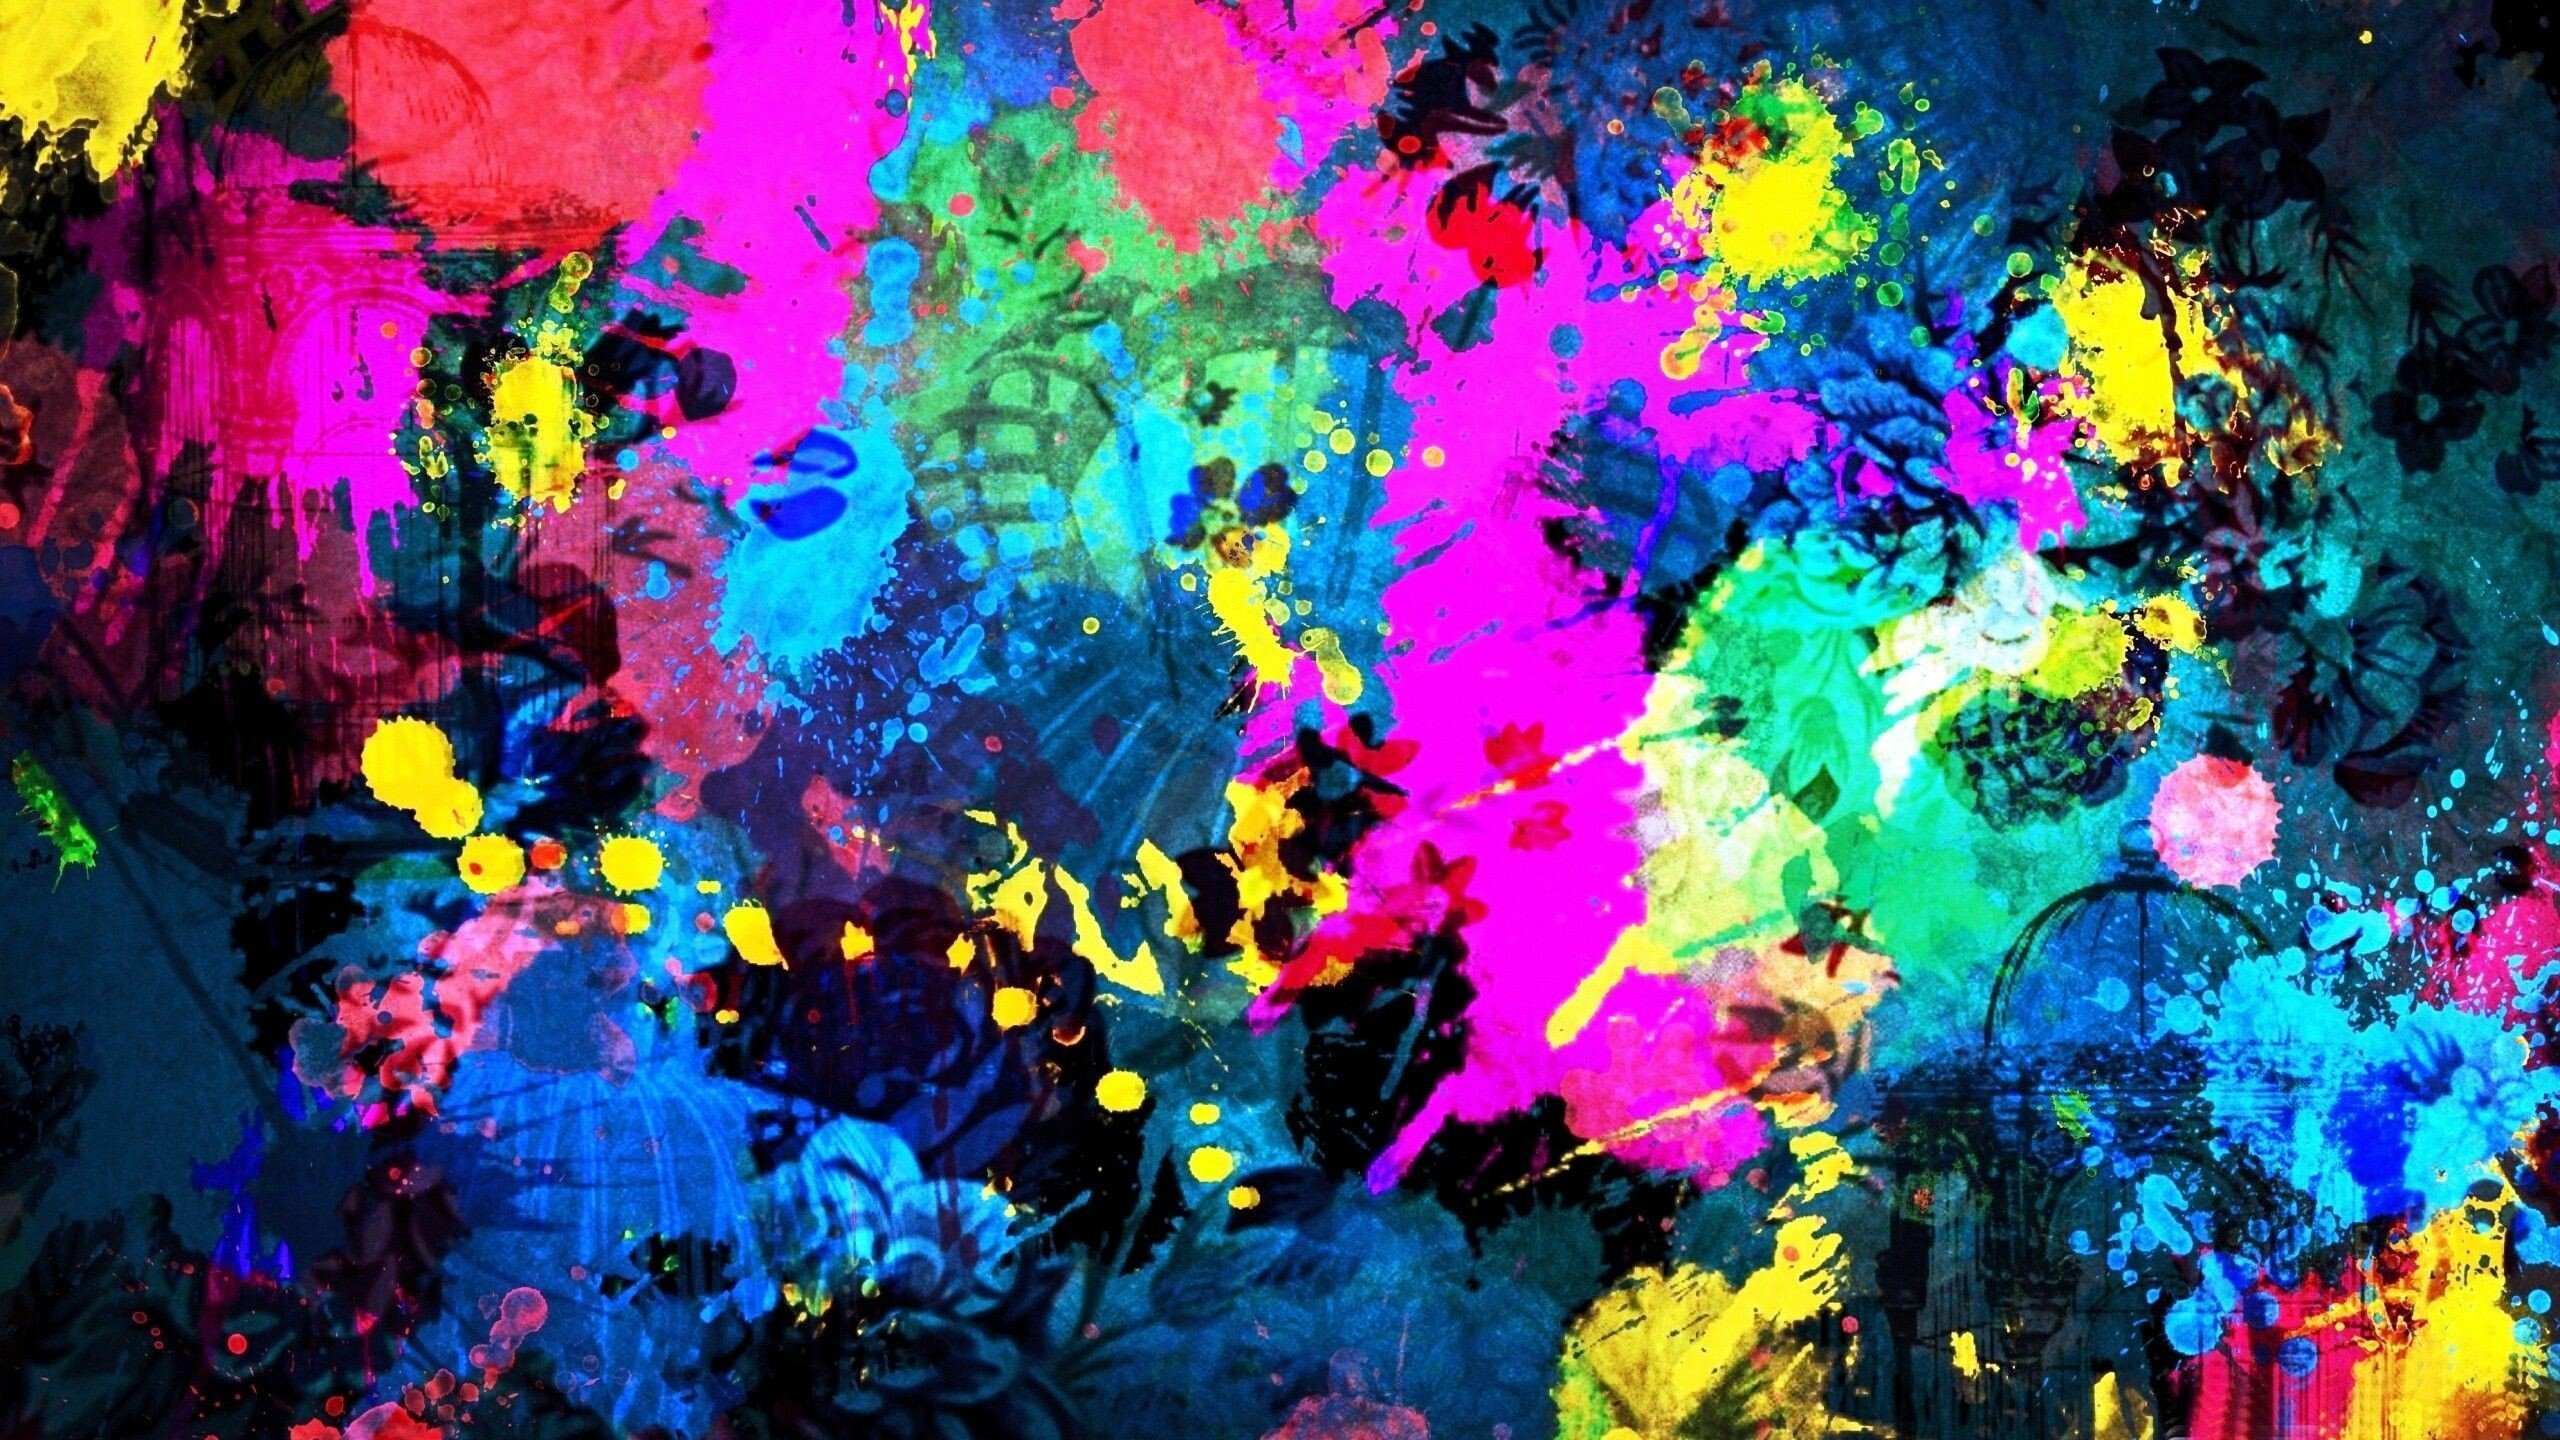 96 Abstract Art Wallpapers Hd 4k 5k For Pc And Mobile Download Free Images For Iphone Android